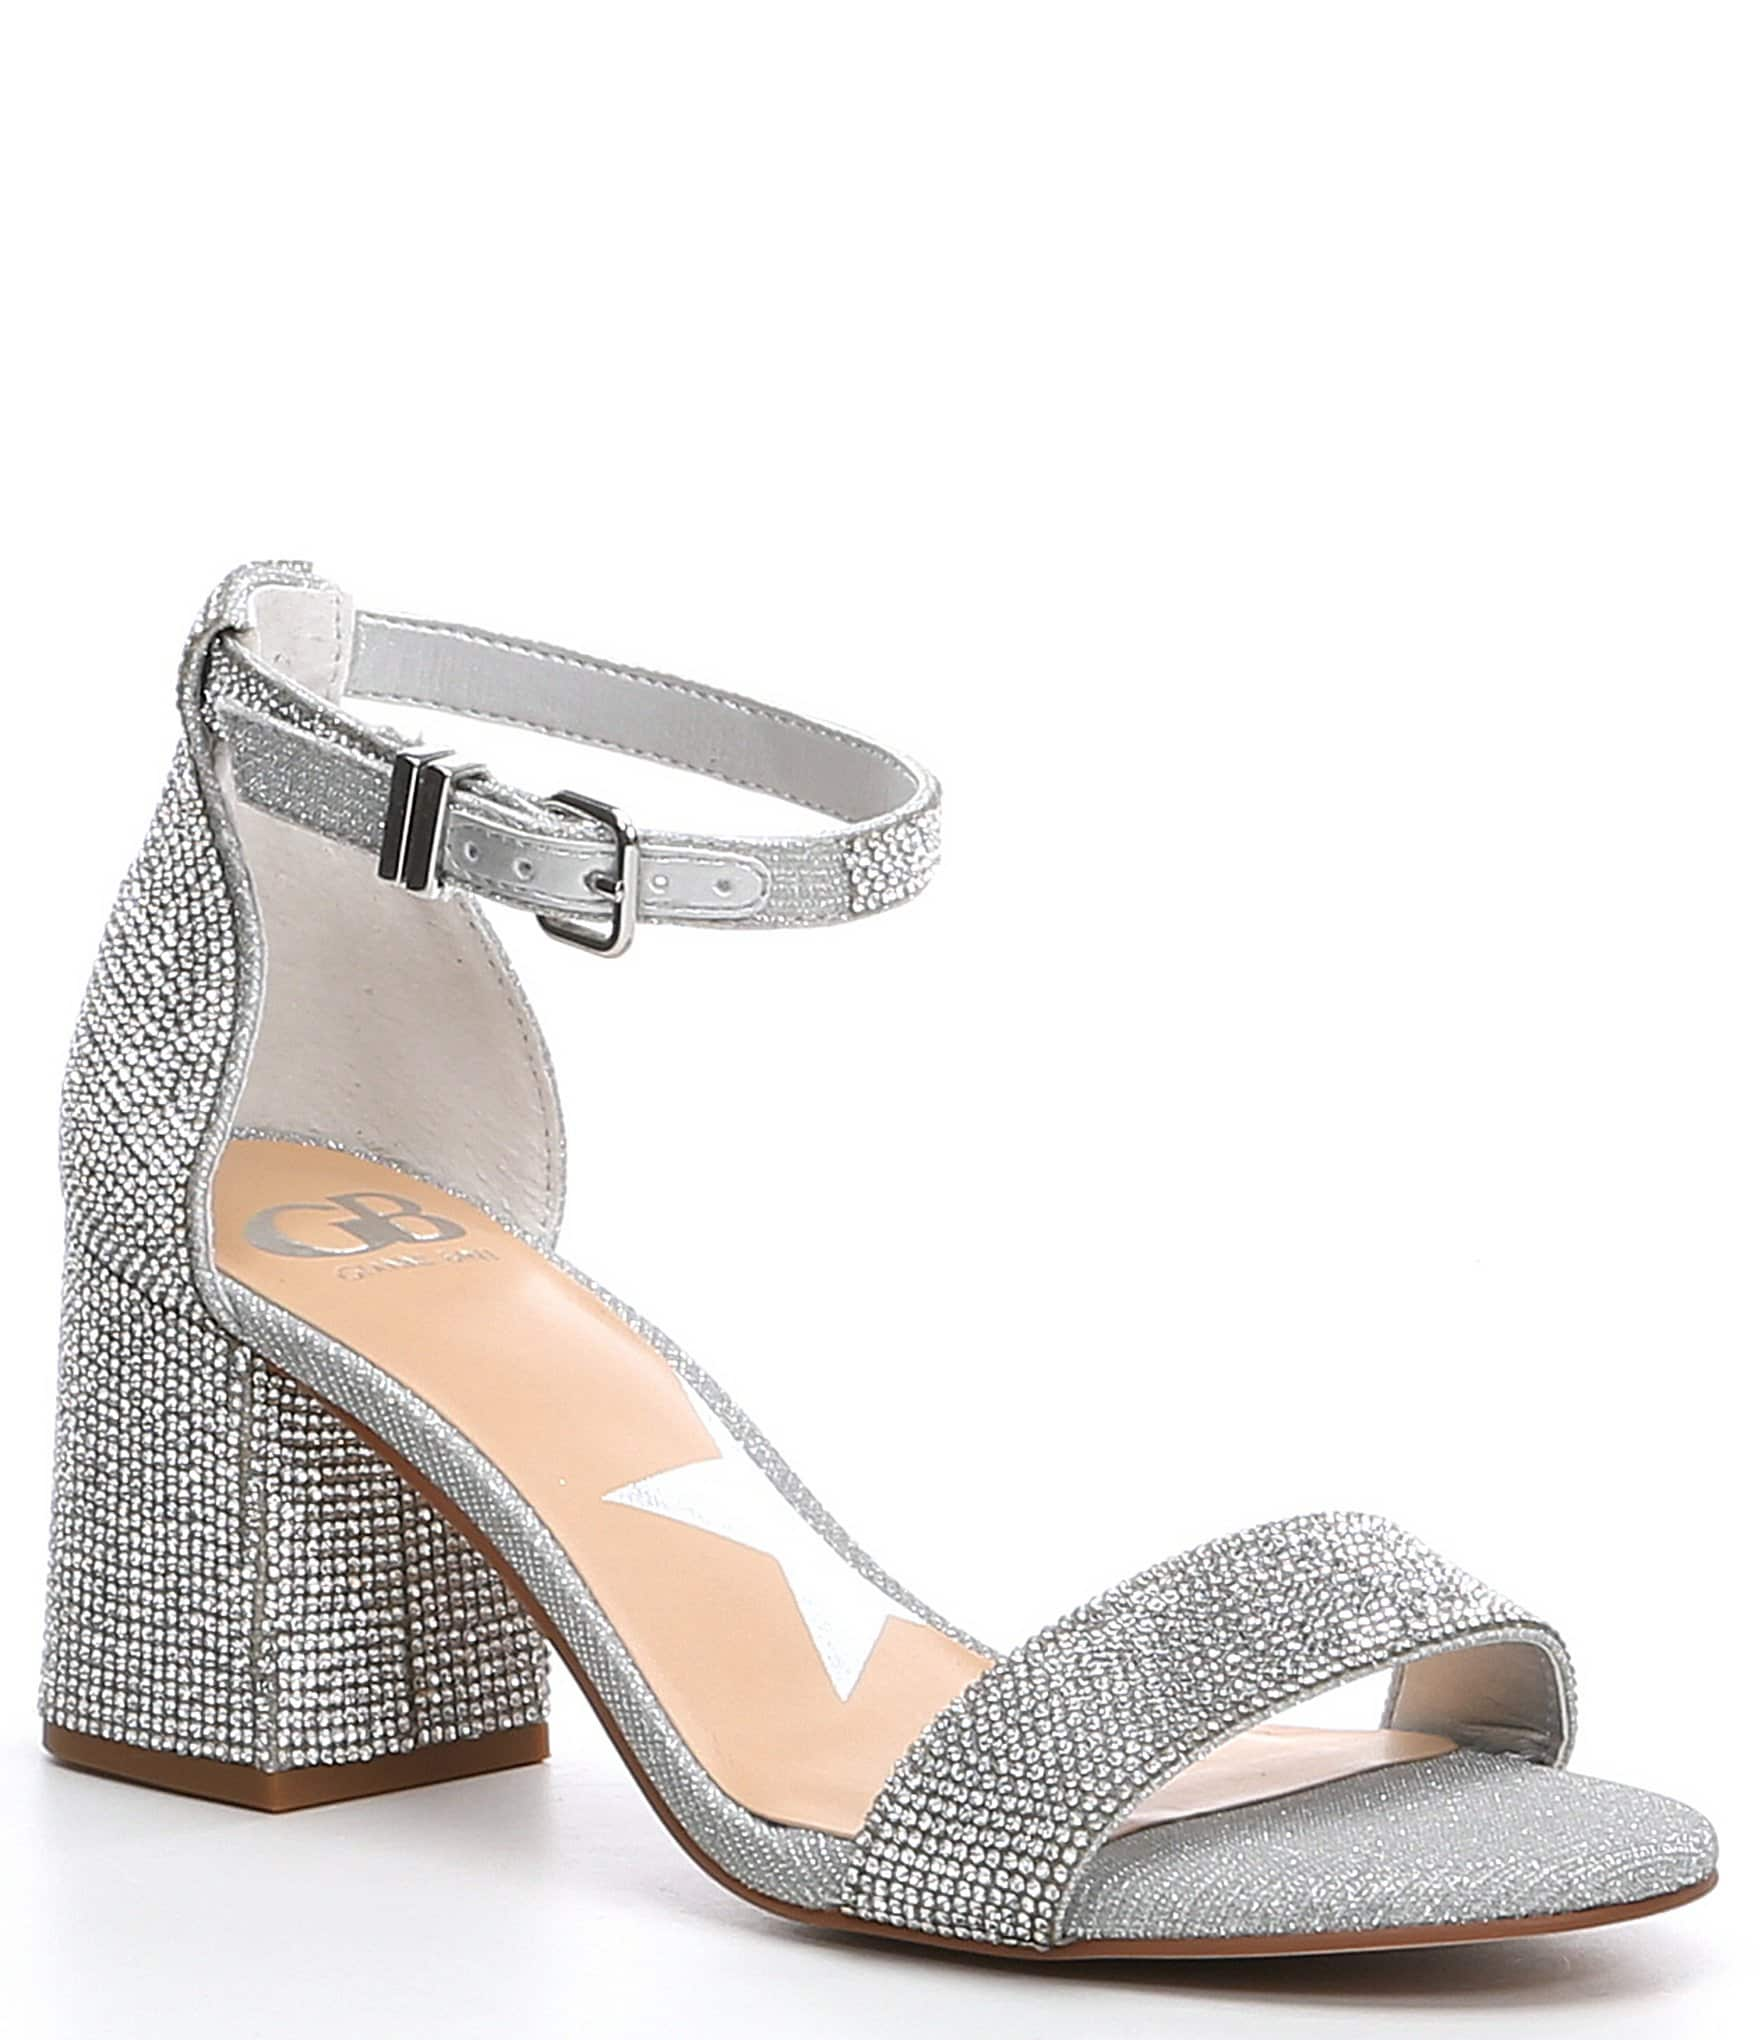 06be6a3157dfc GB Bling-Out Rhinestone Embellished Block Heel Sandals